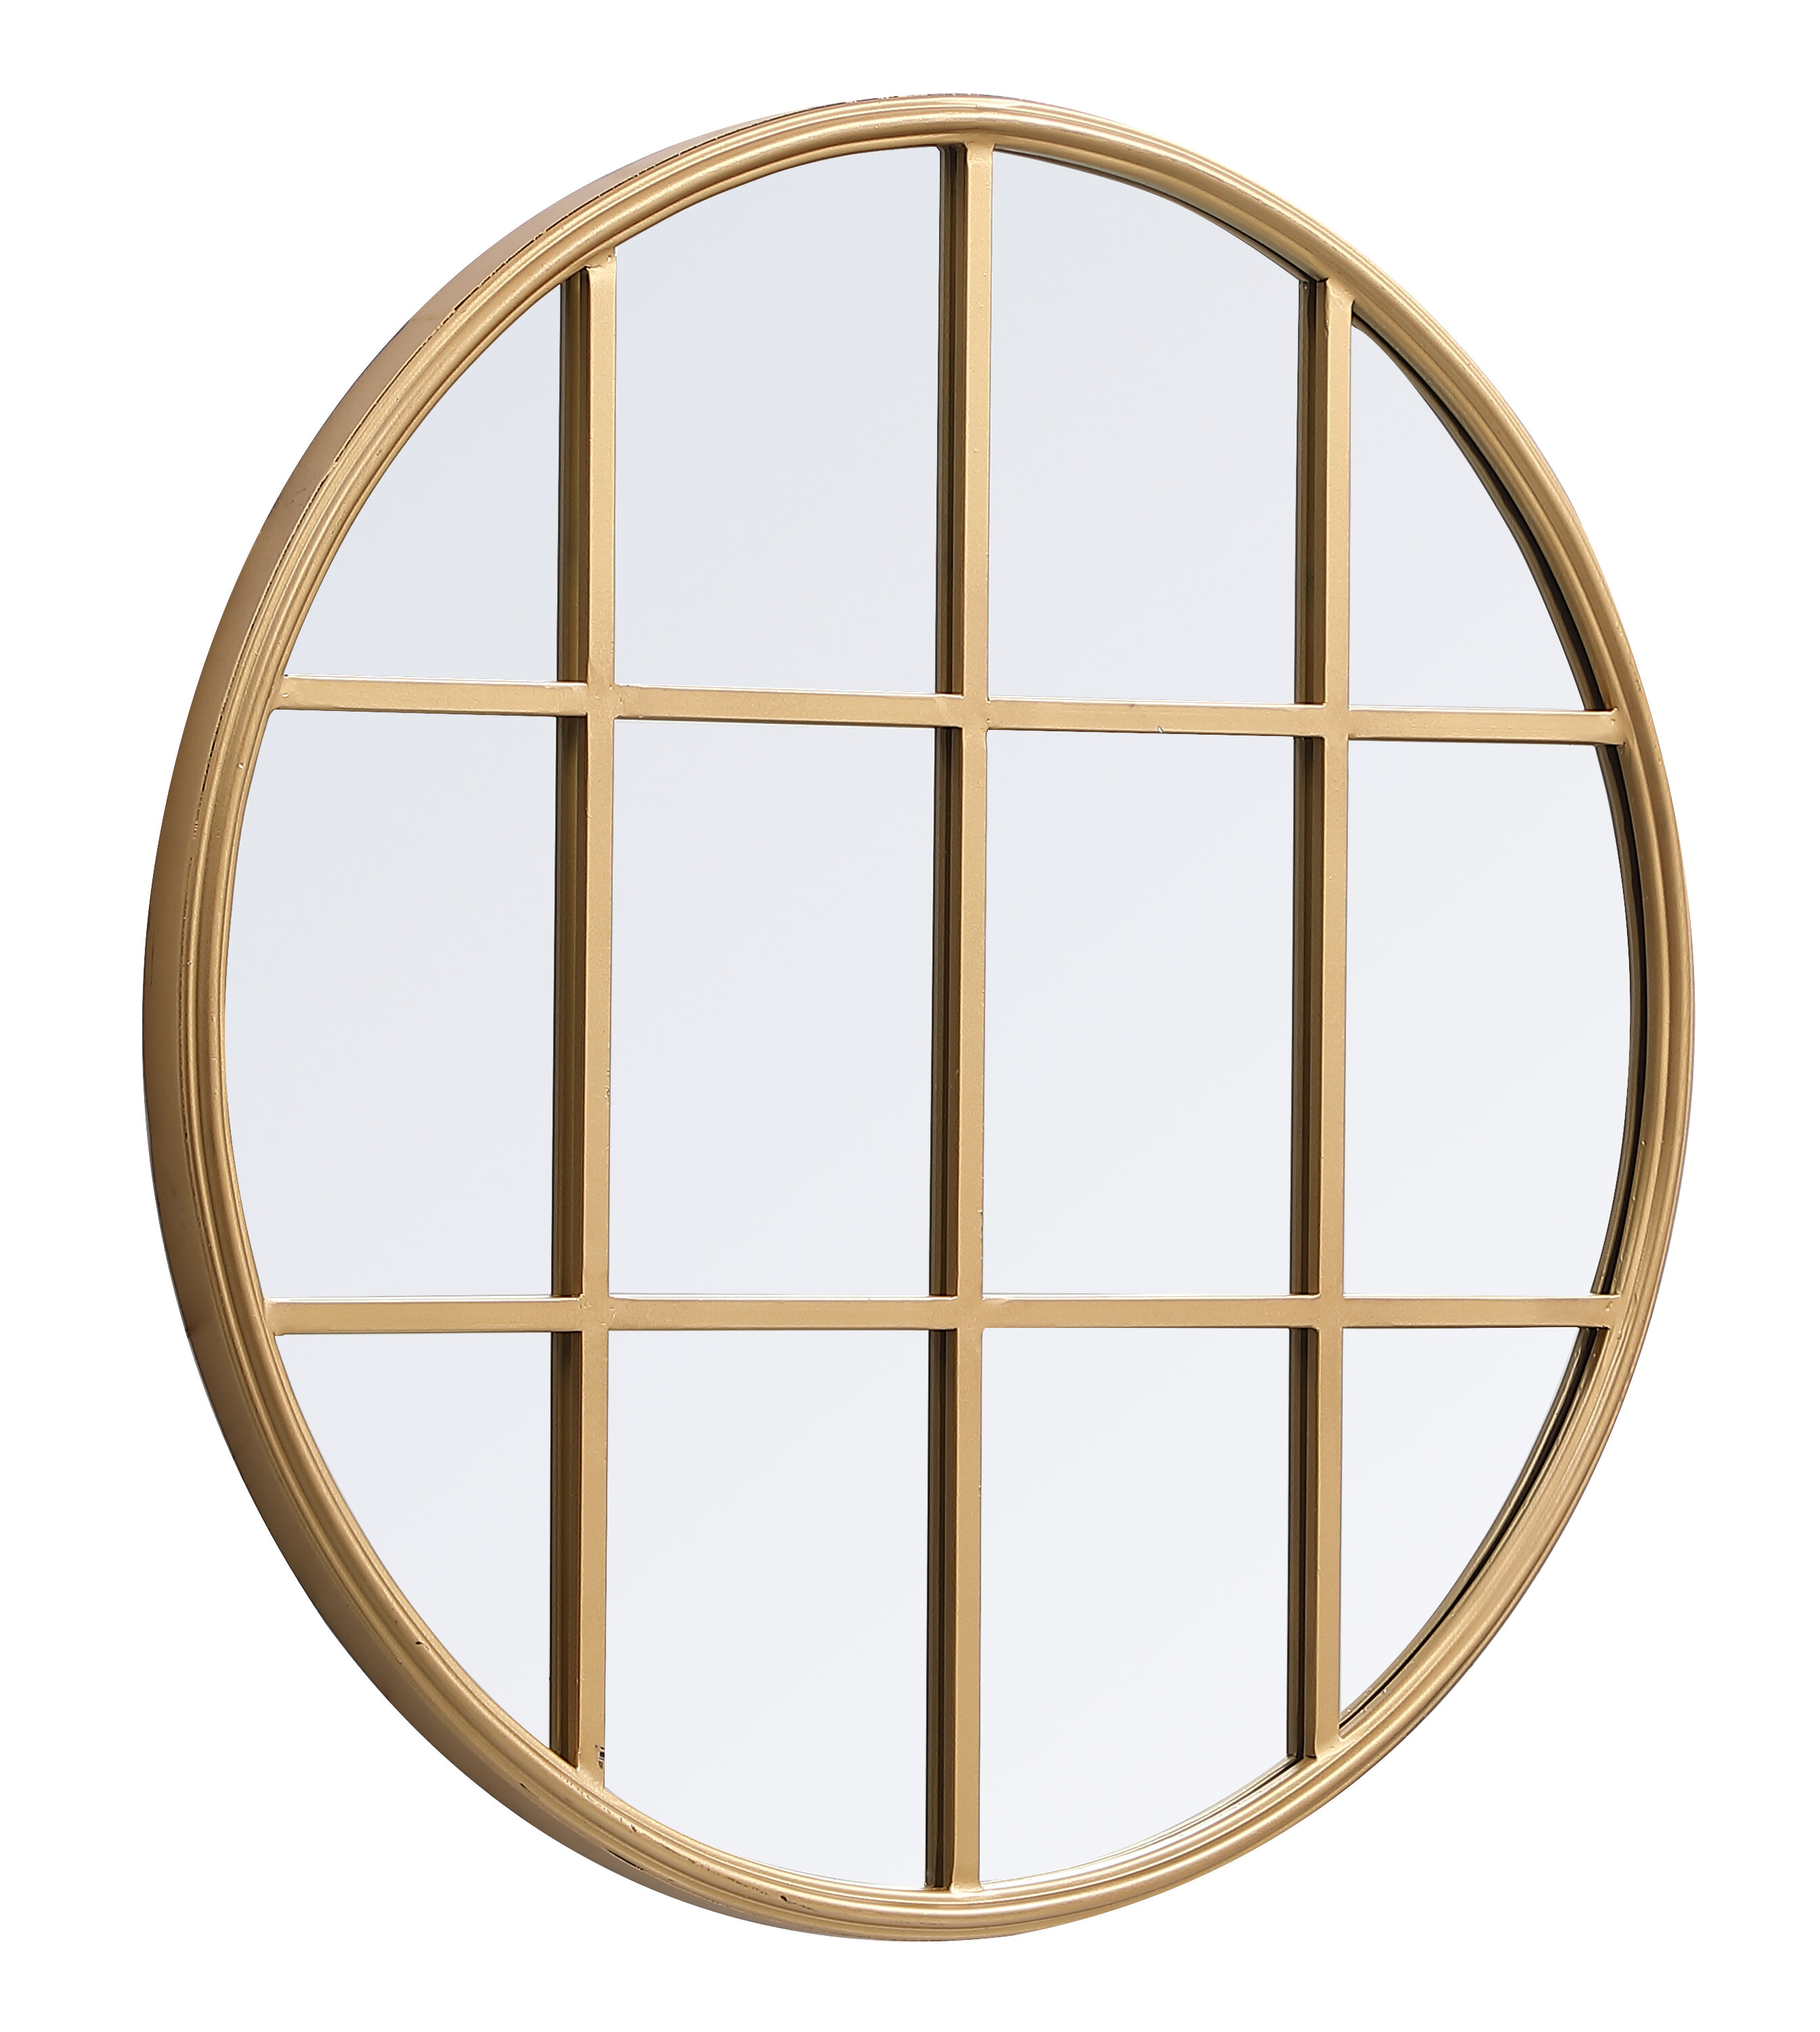 Commercial Use Brass Wall Mirrors You Ll Love In 2021 Wayfair